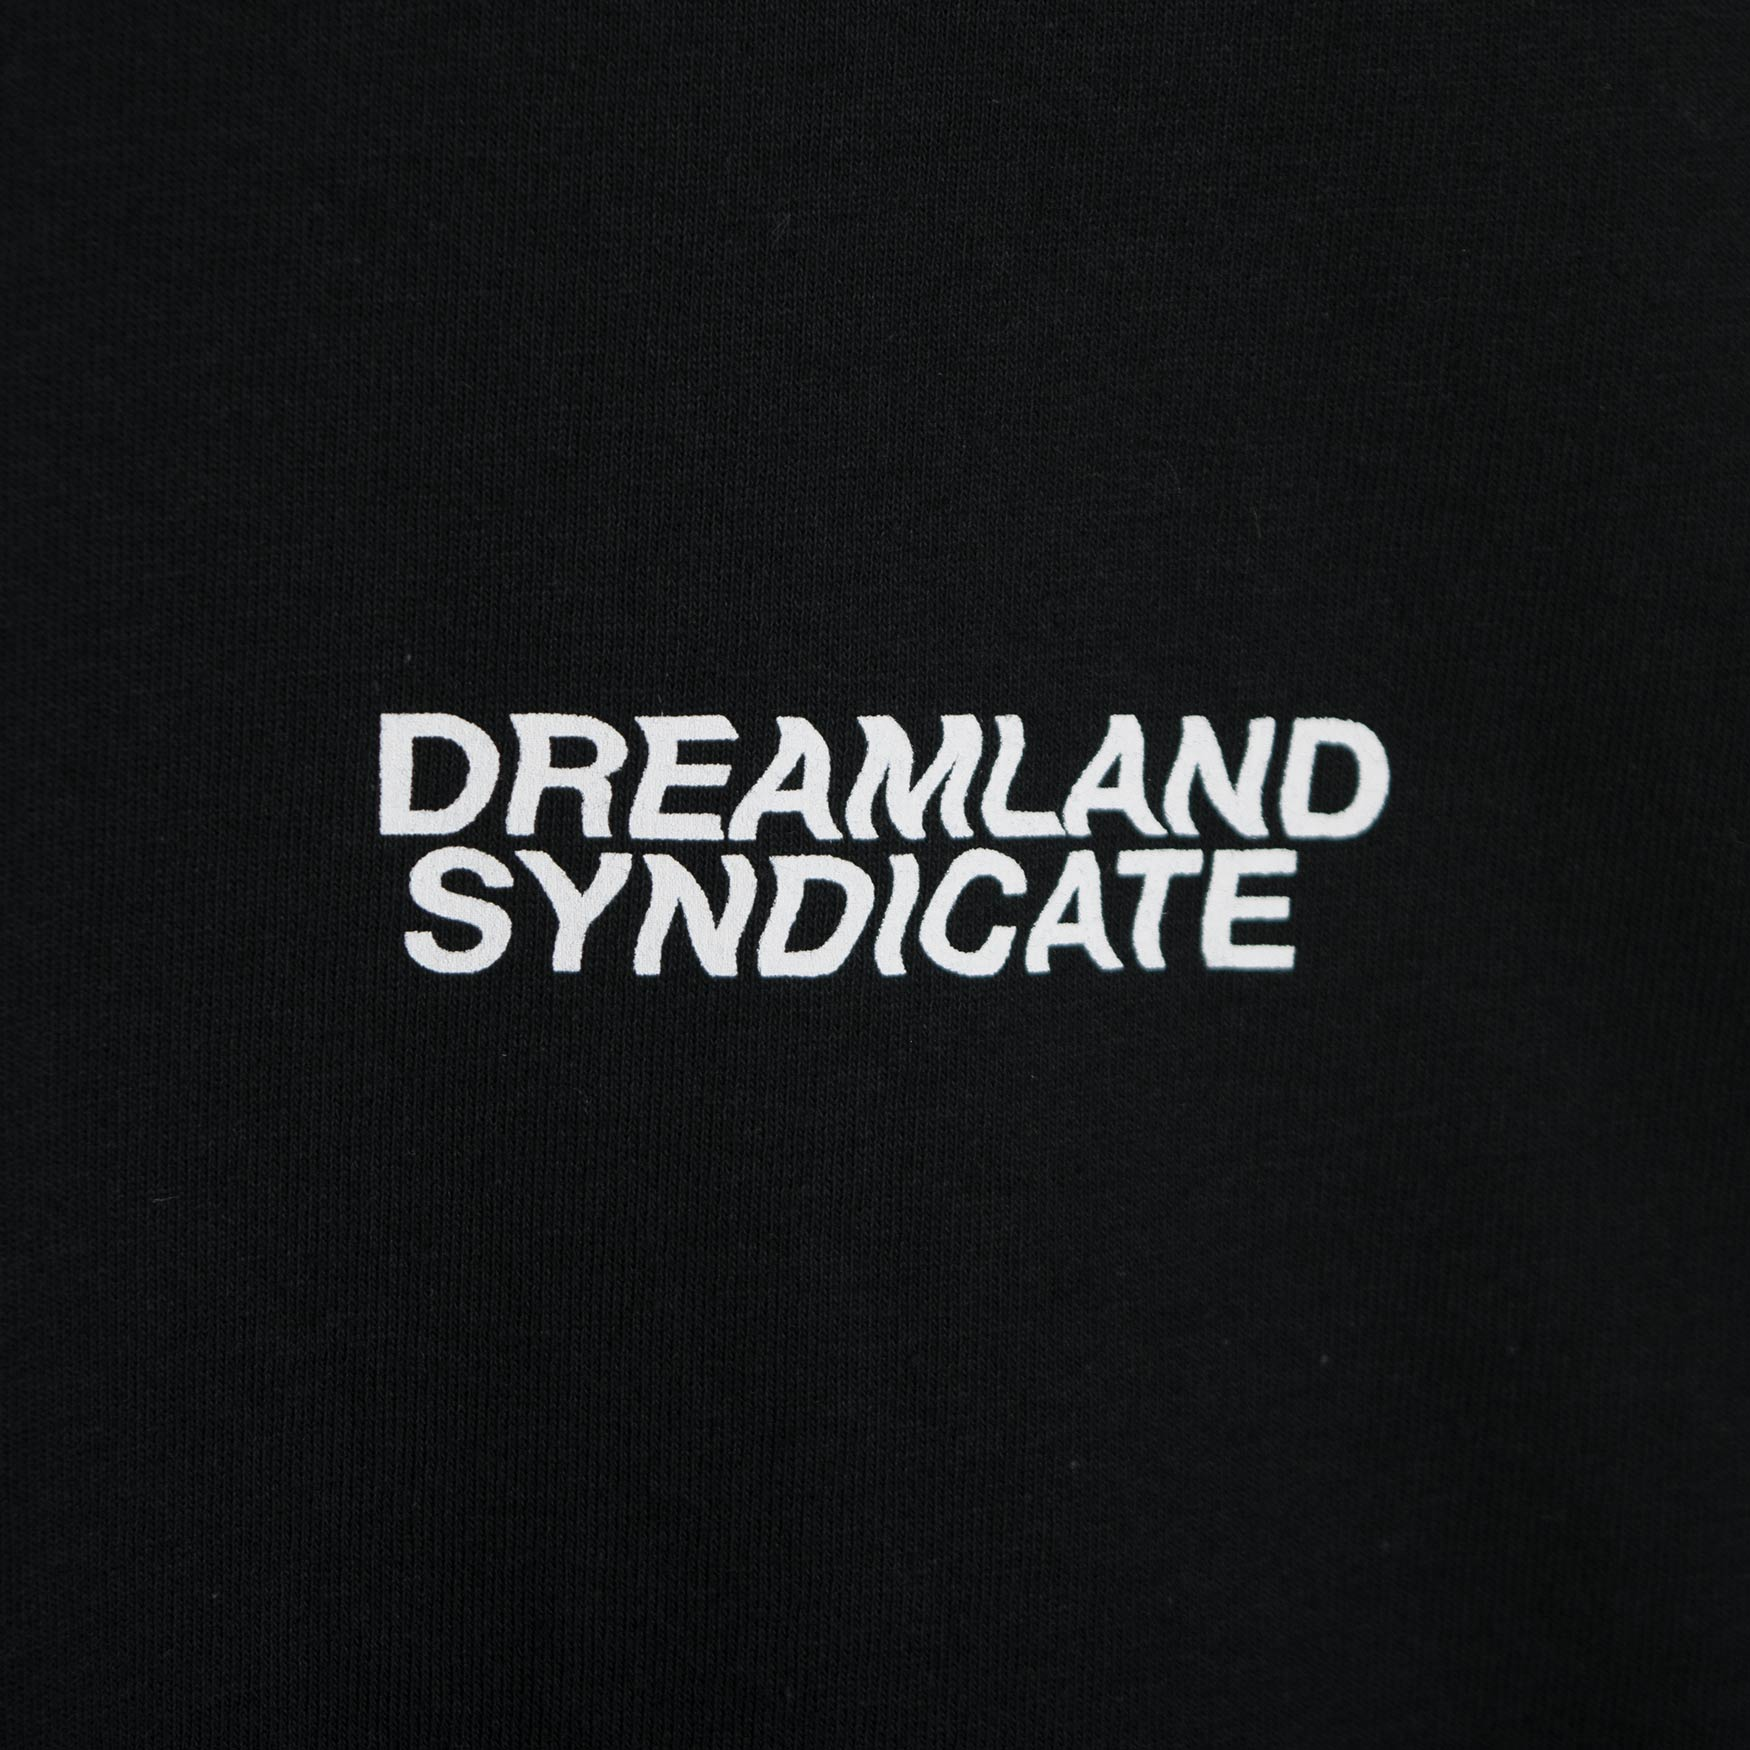 Dreamland Syndicate Contrast Core Logo Long Sleeve T-Shirt - Black